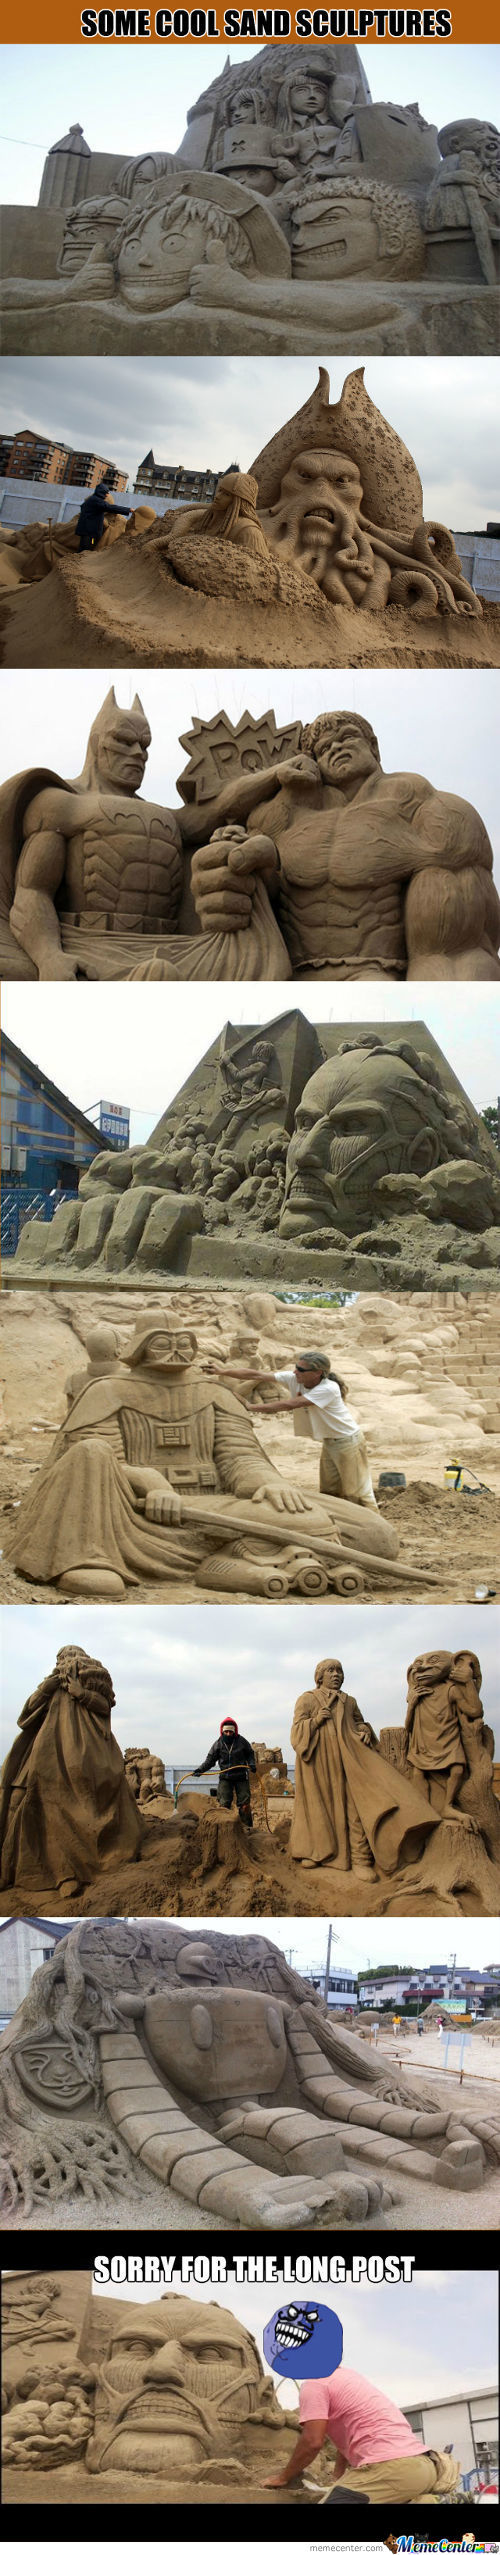 Some Cool Sand Sculptures